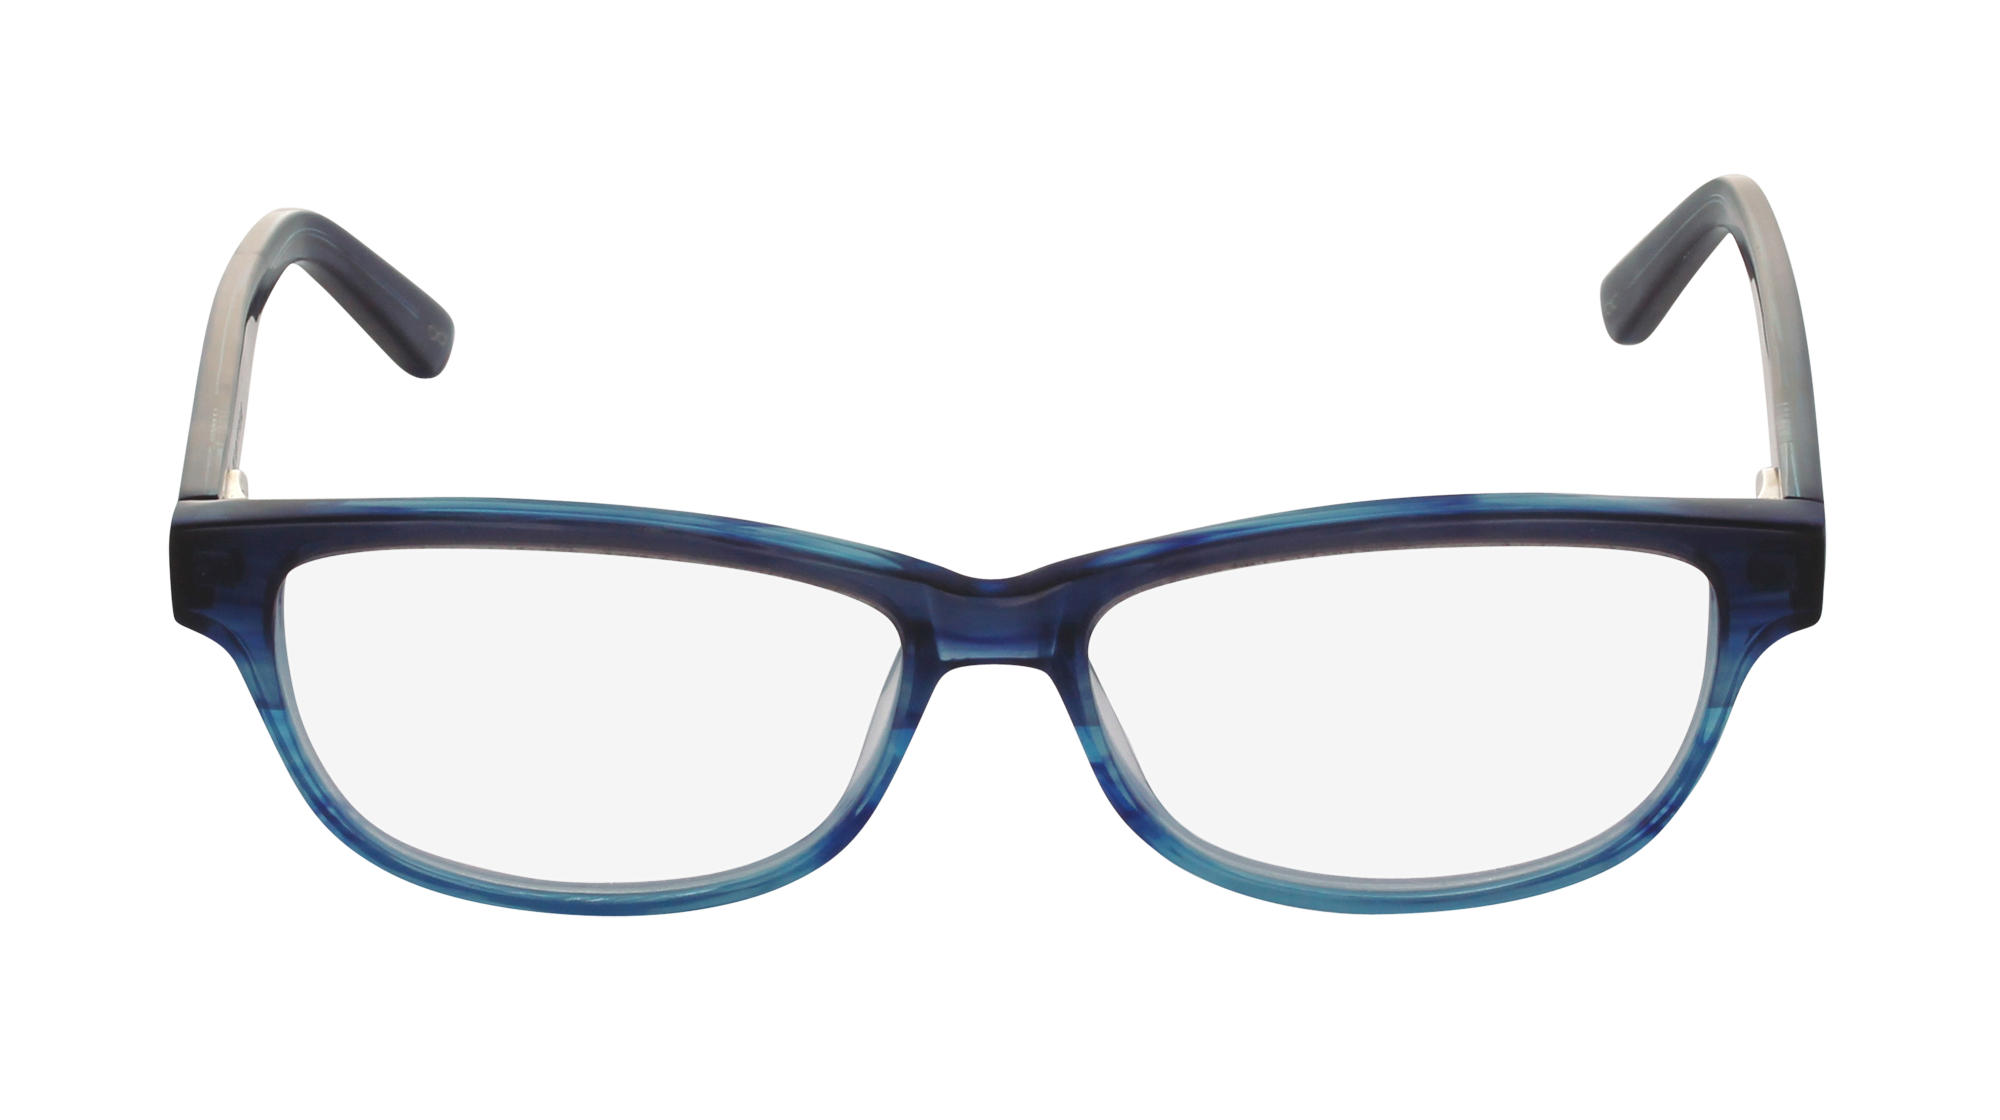 Goggles transparent boy stylish. Sunglasses png images download